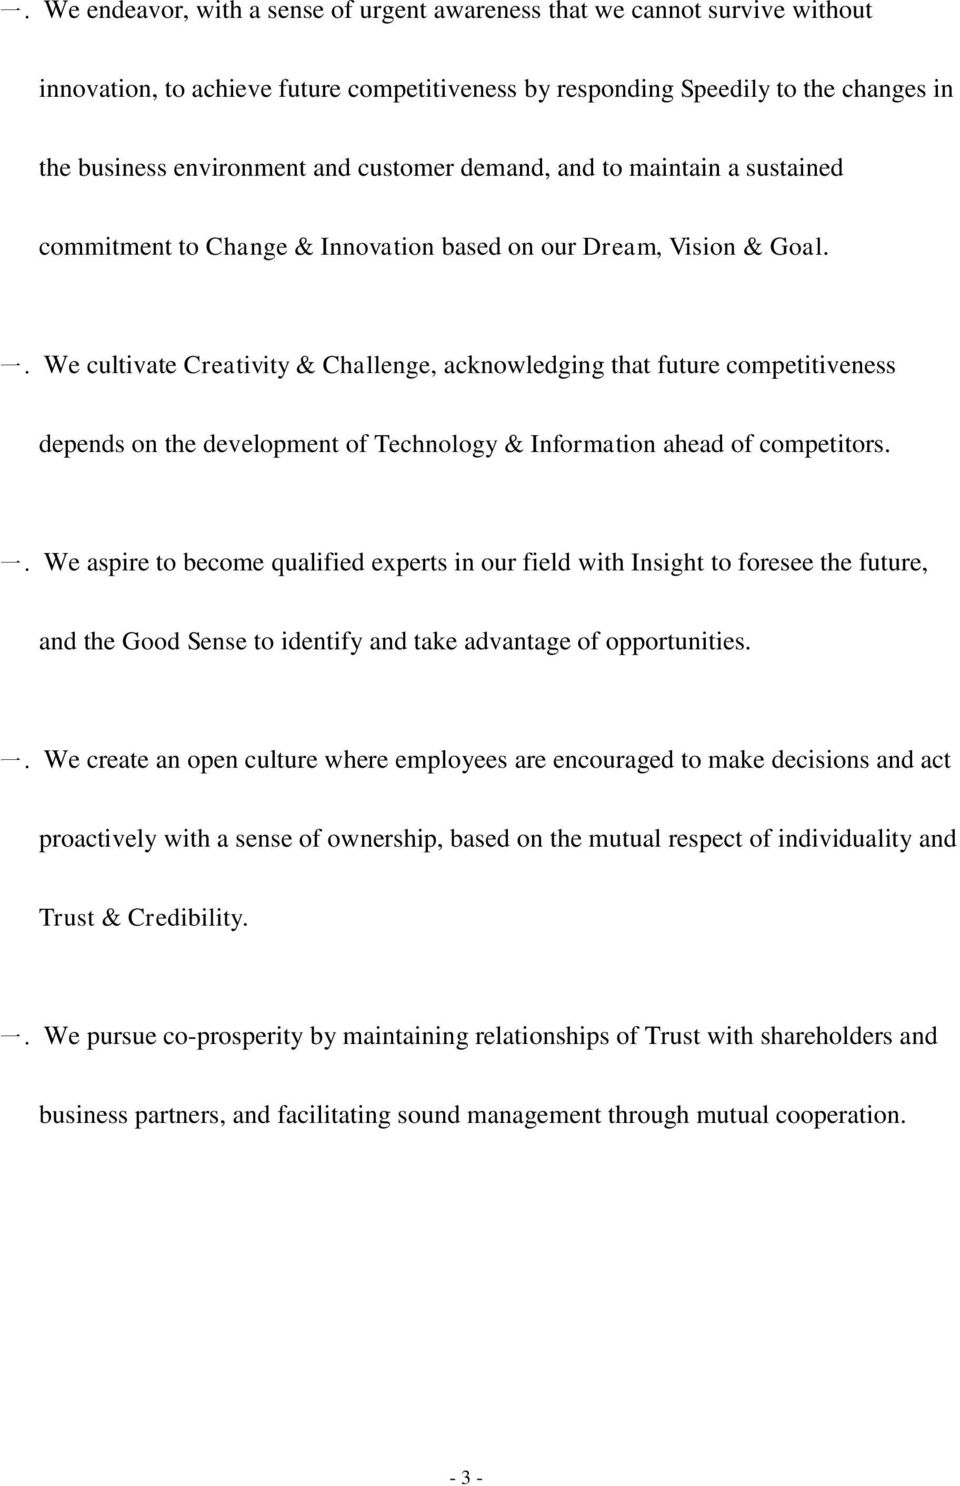 We cultivate Creativity & Challenge, acknowledging that future competitiveness depends on the development of Technology & Information ahead of competitors. 一.